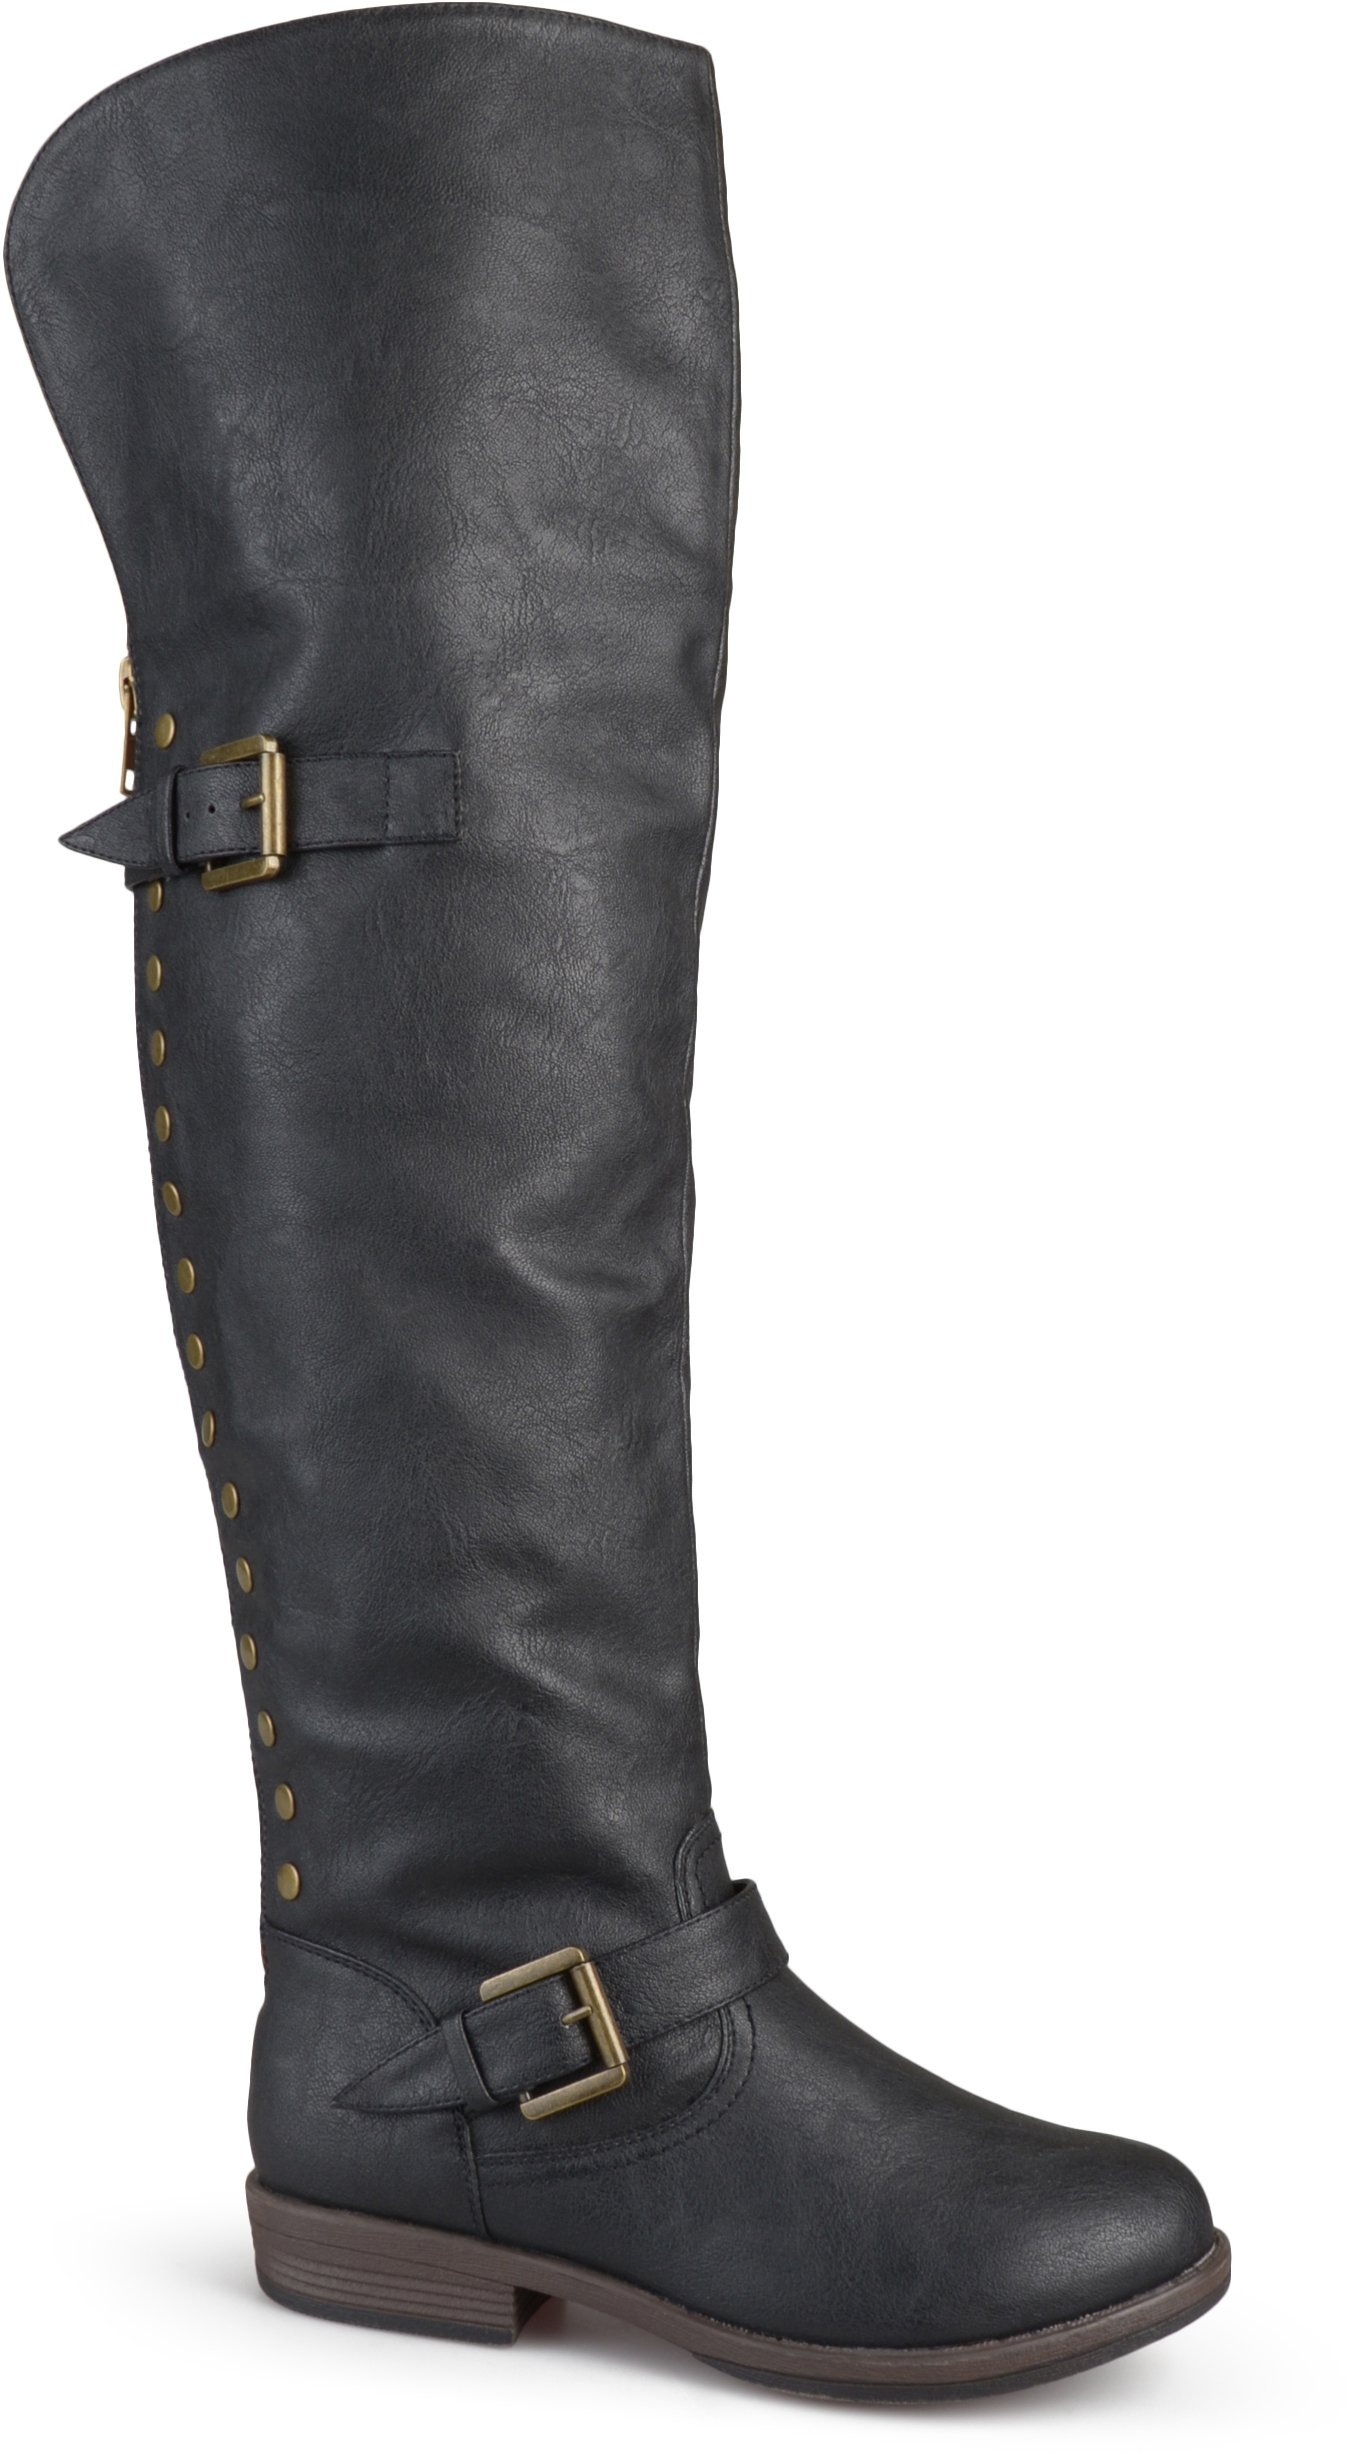 Brinley Co Women's Sugar Over The Knee Boot, Black, 6 Regular US